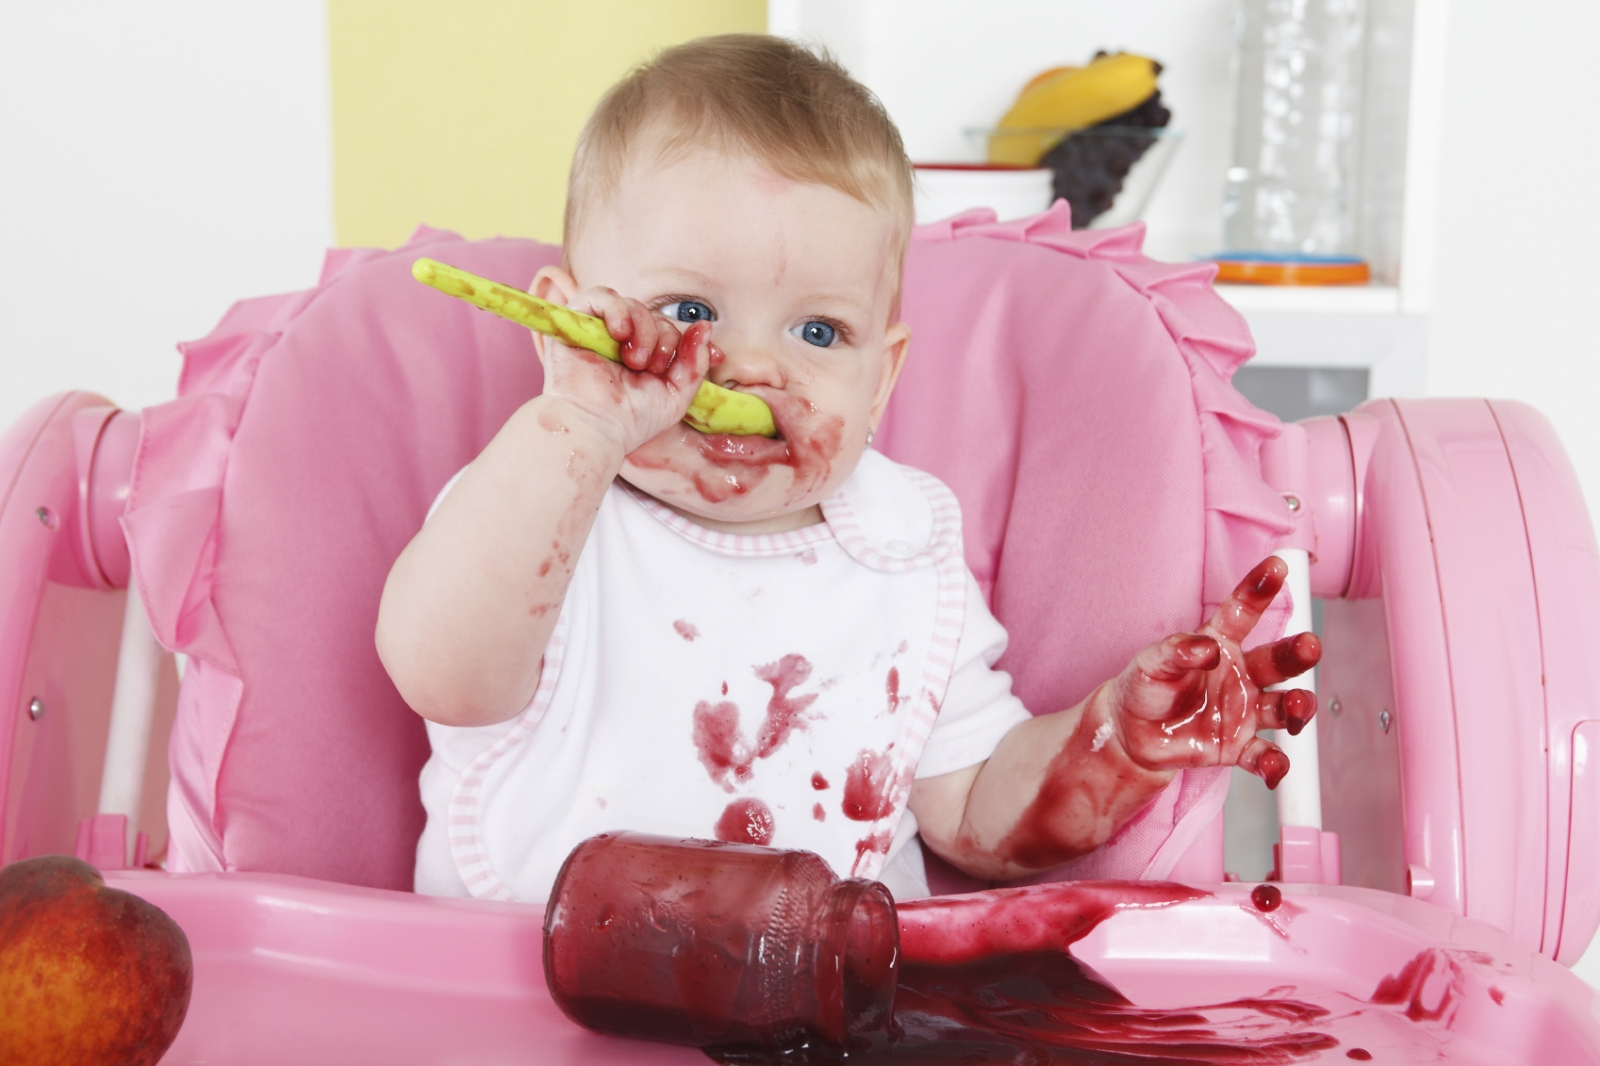 Baby eating messy